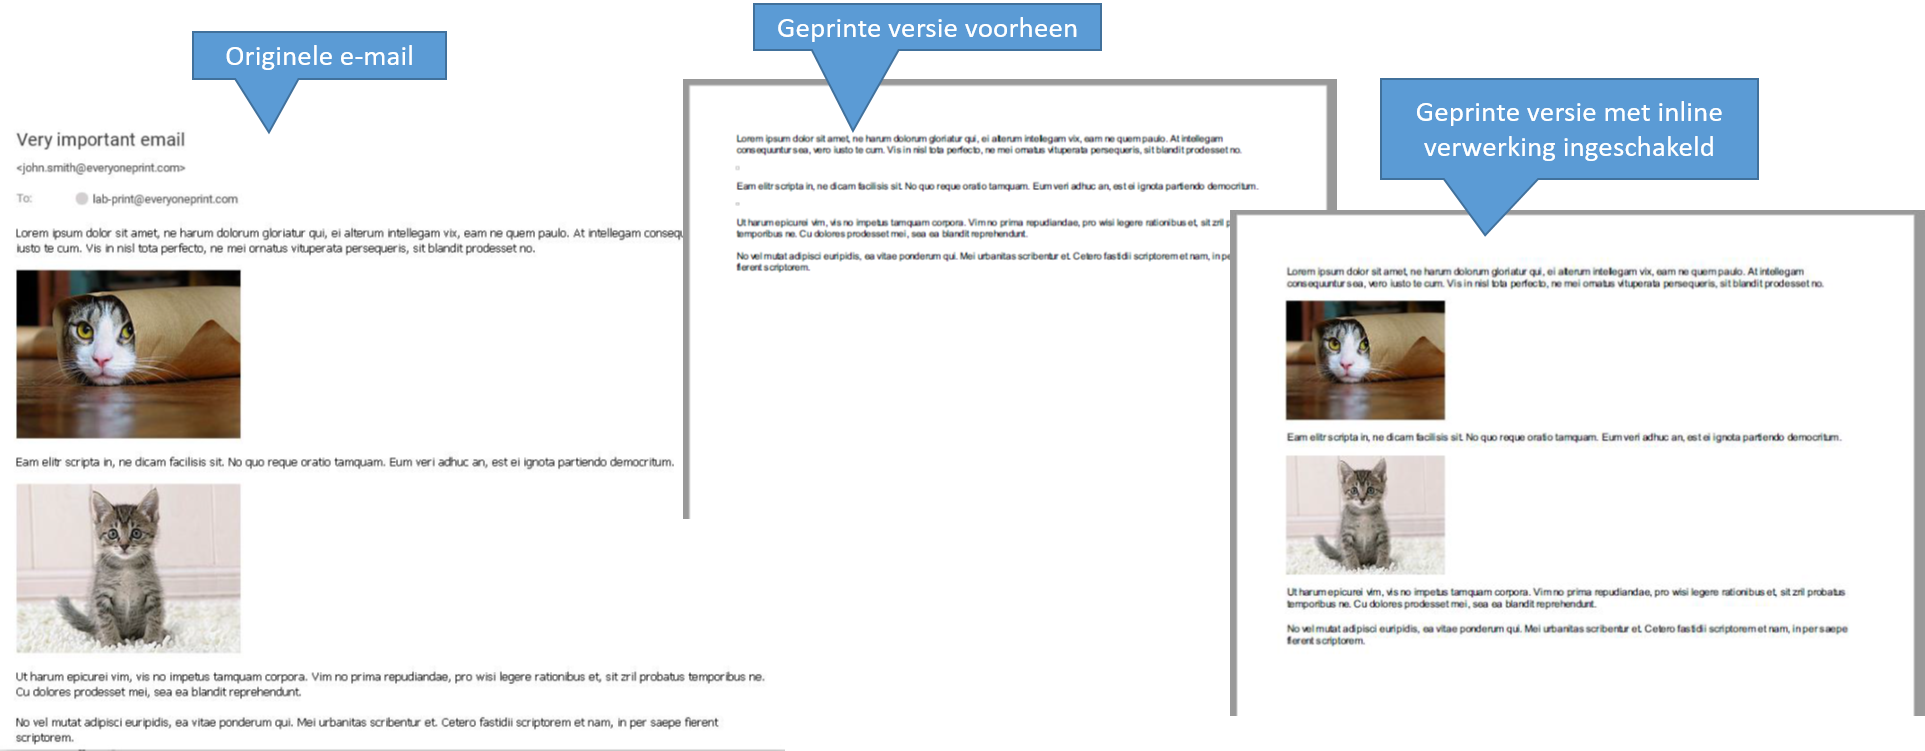 Experimental support of rendering of HTML emails with inline images everyoneprint 4.2